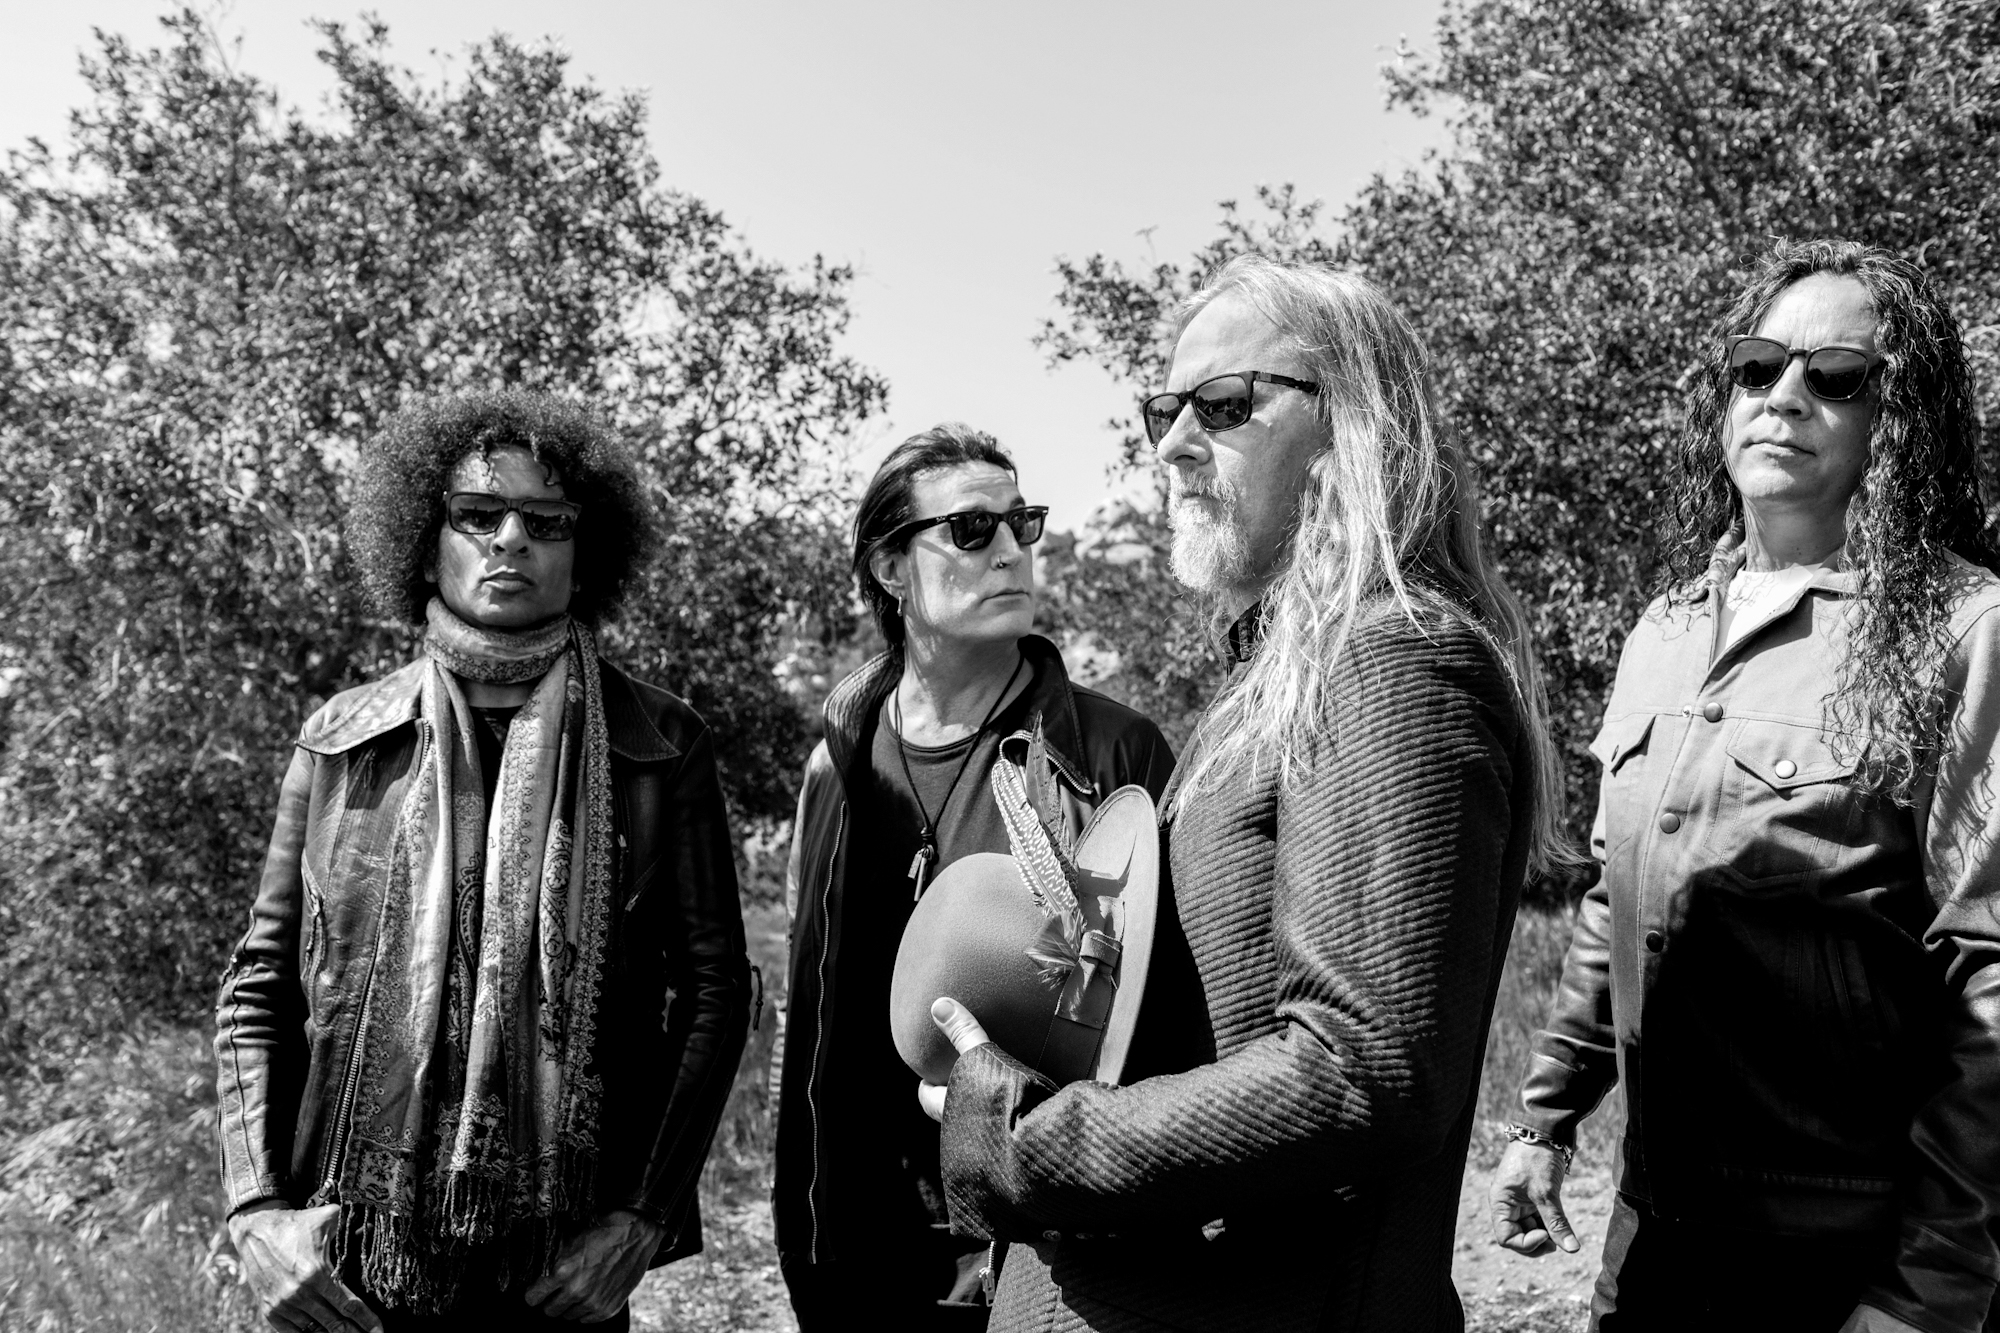 ALICE IN CHAINS ANNOUNCE NEW ALBUM RAINIER FOG THEIR FIRST NEW ALBUM IN FIVE YEARS OUT AUGUST 24th